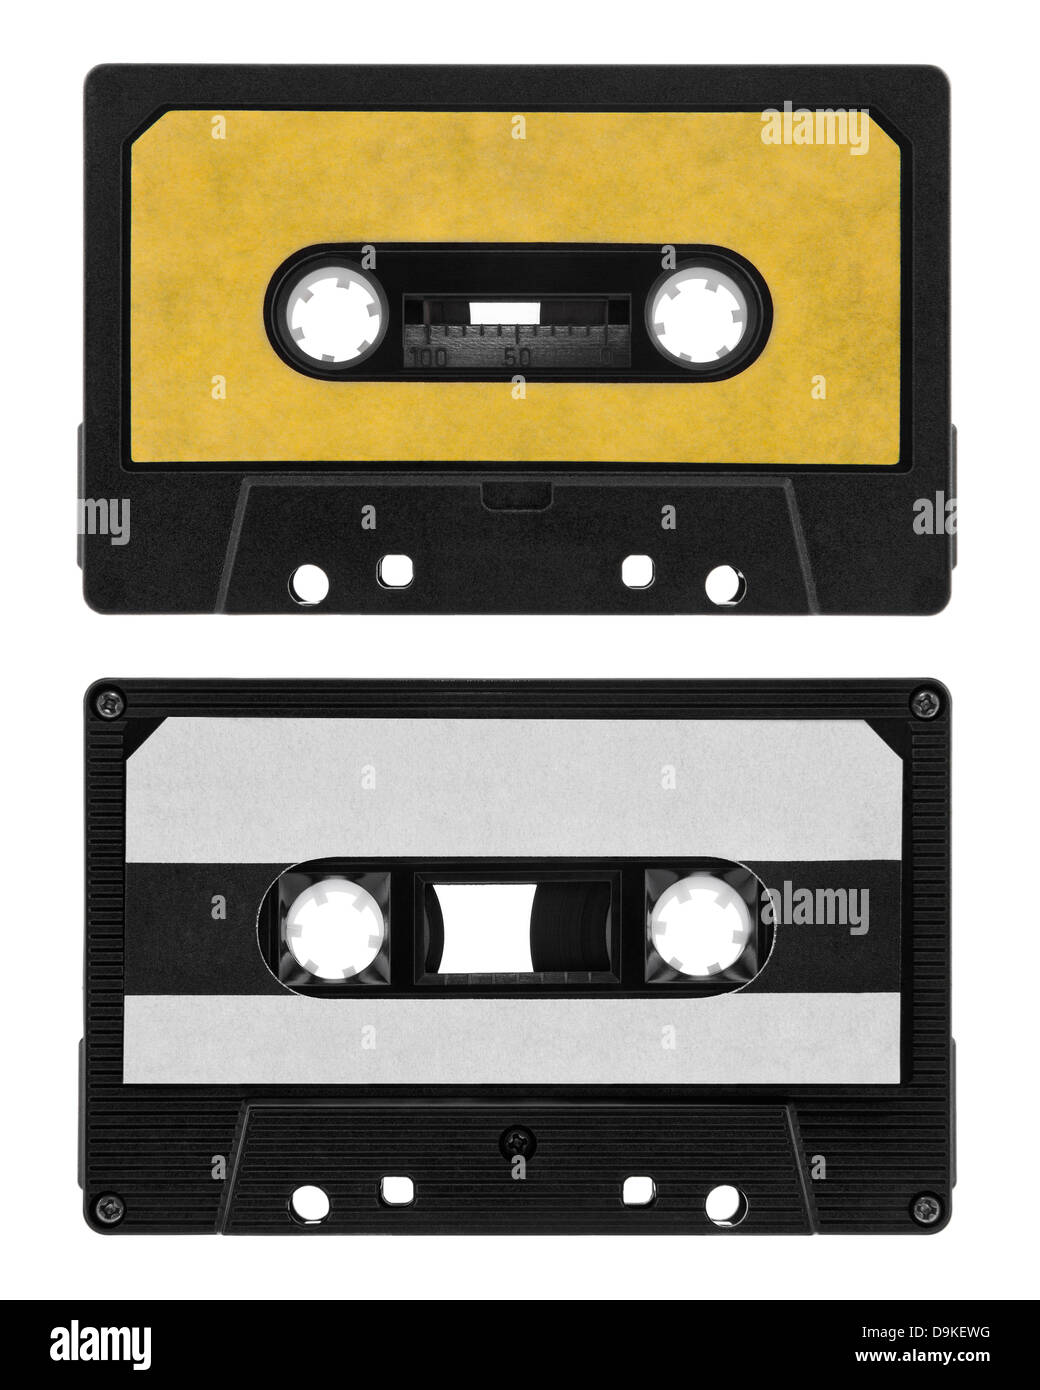 Old cassette tape isolated on white - Stock Image